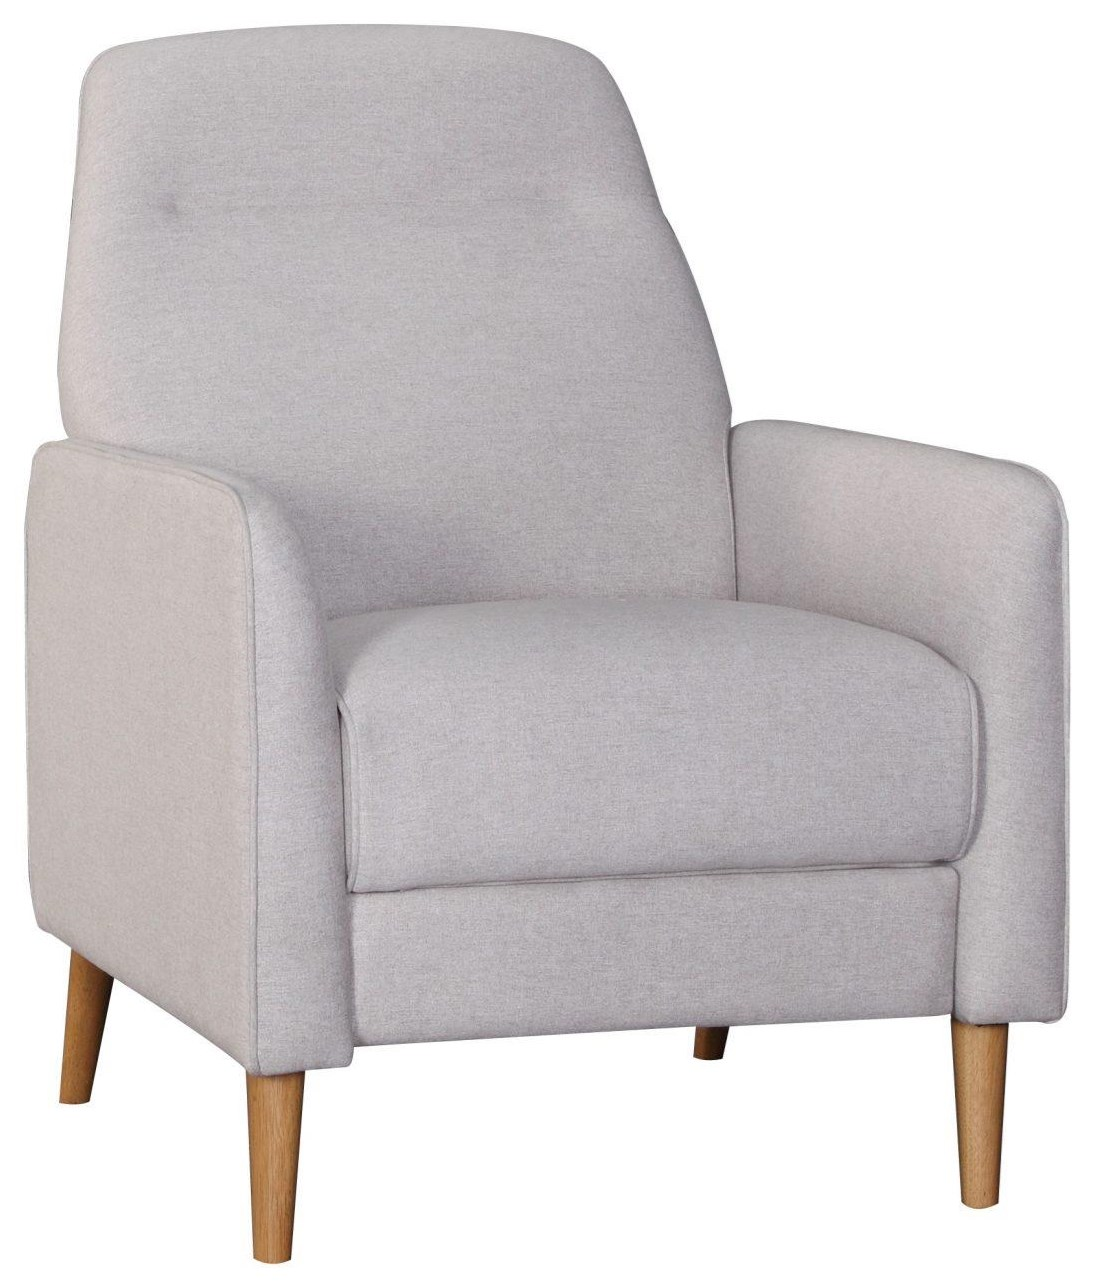 5132 Recliner by Urban Chic at Stoney Creek Furniture